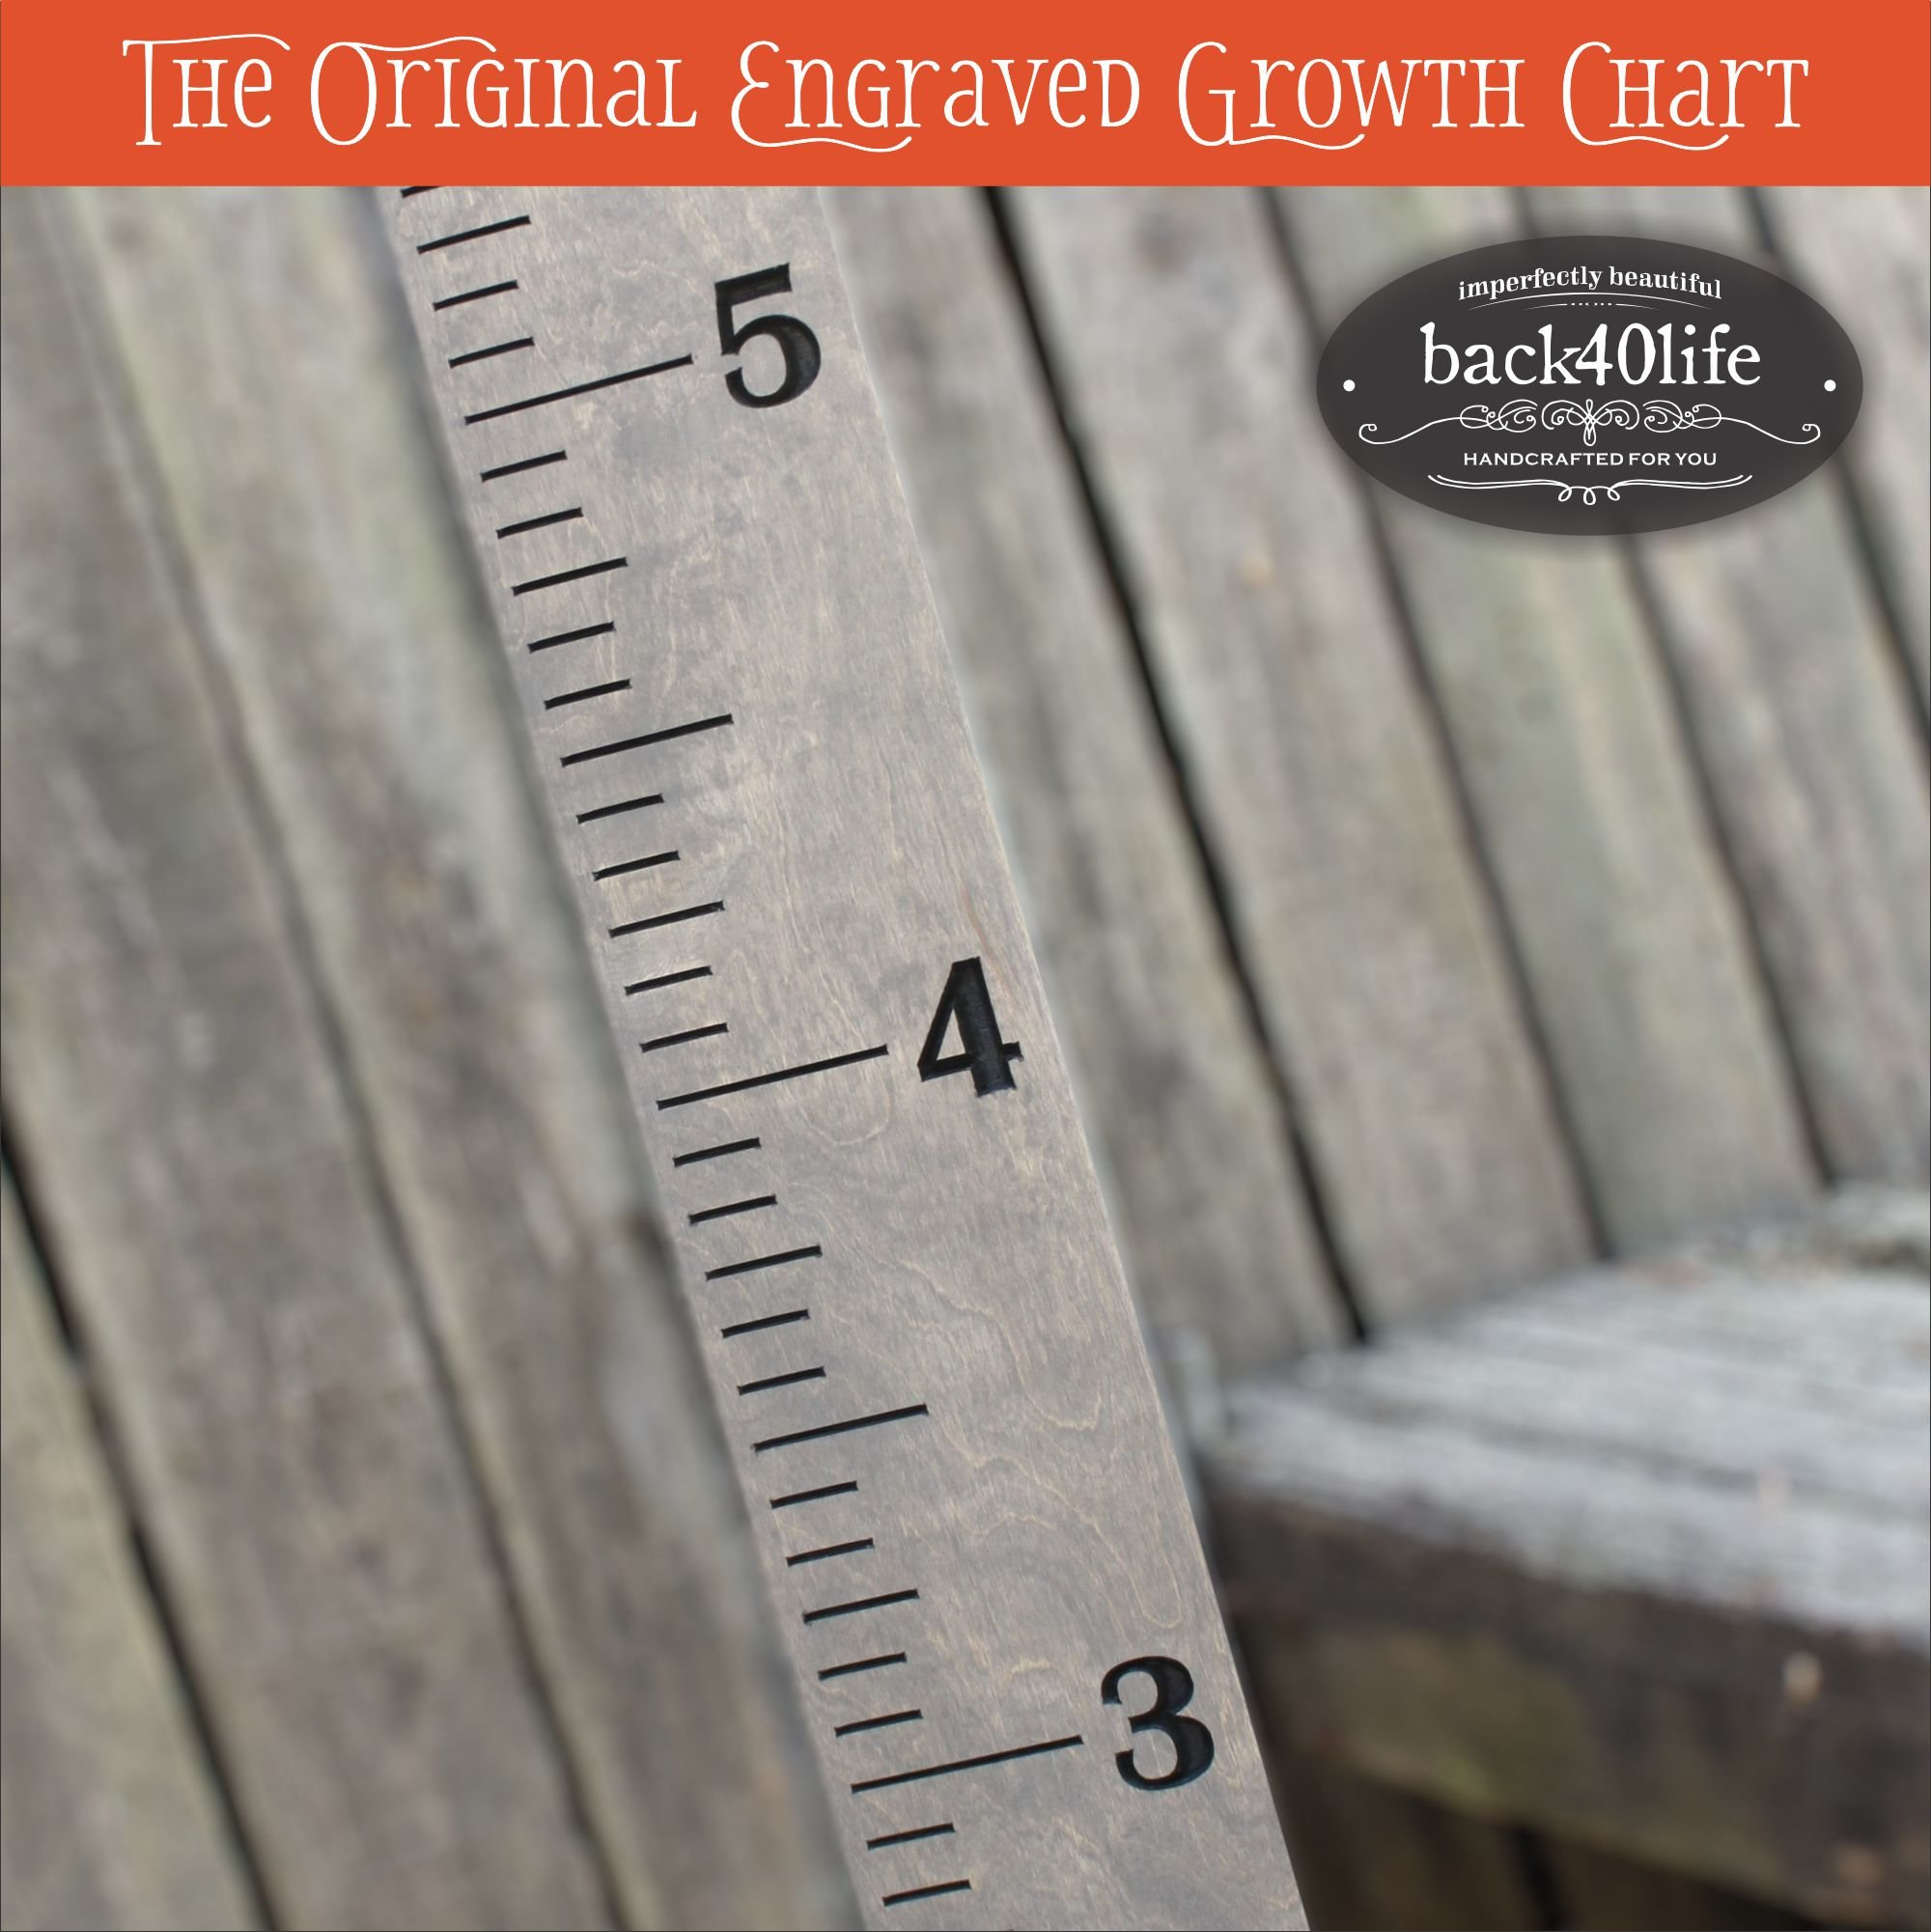 Back40Life | 60'' Premium Engraved Wooden Growth Height Chart Ruler - The Establishment (Gray Stain + Black)